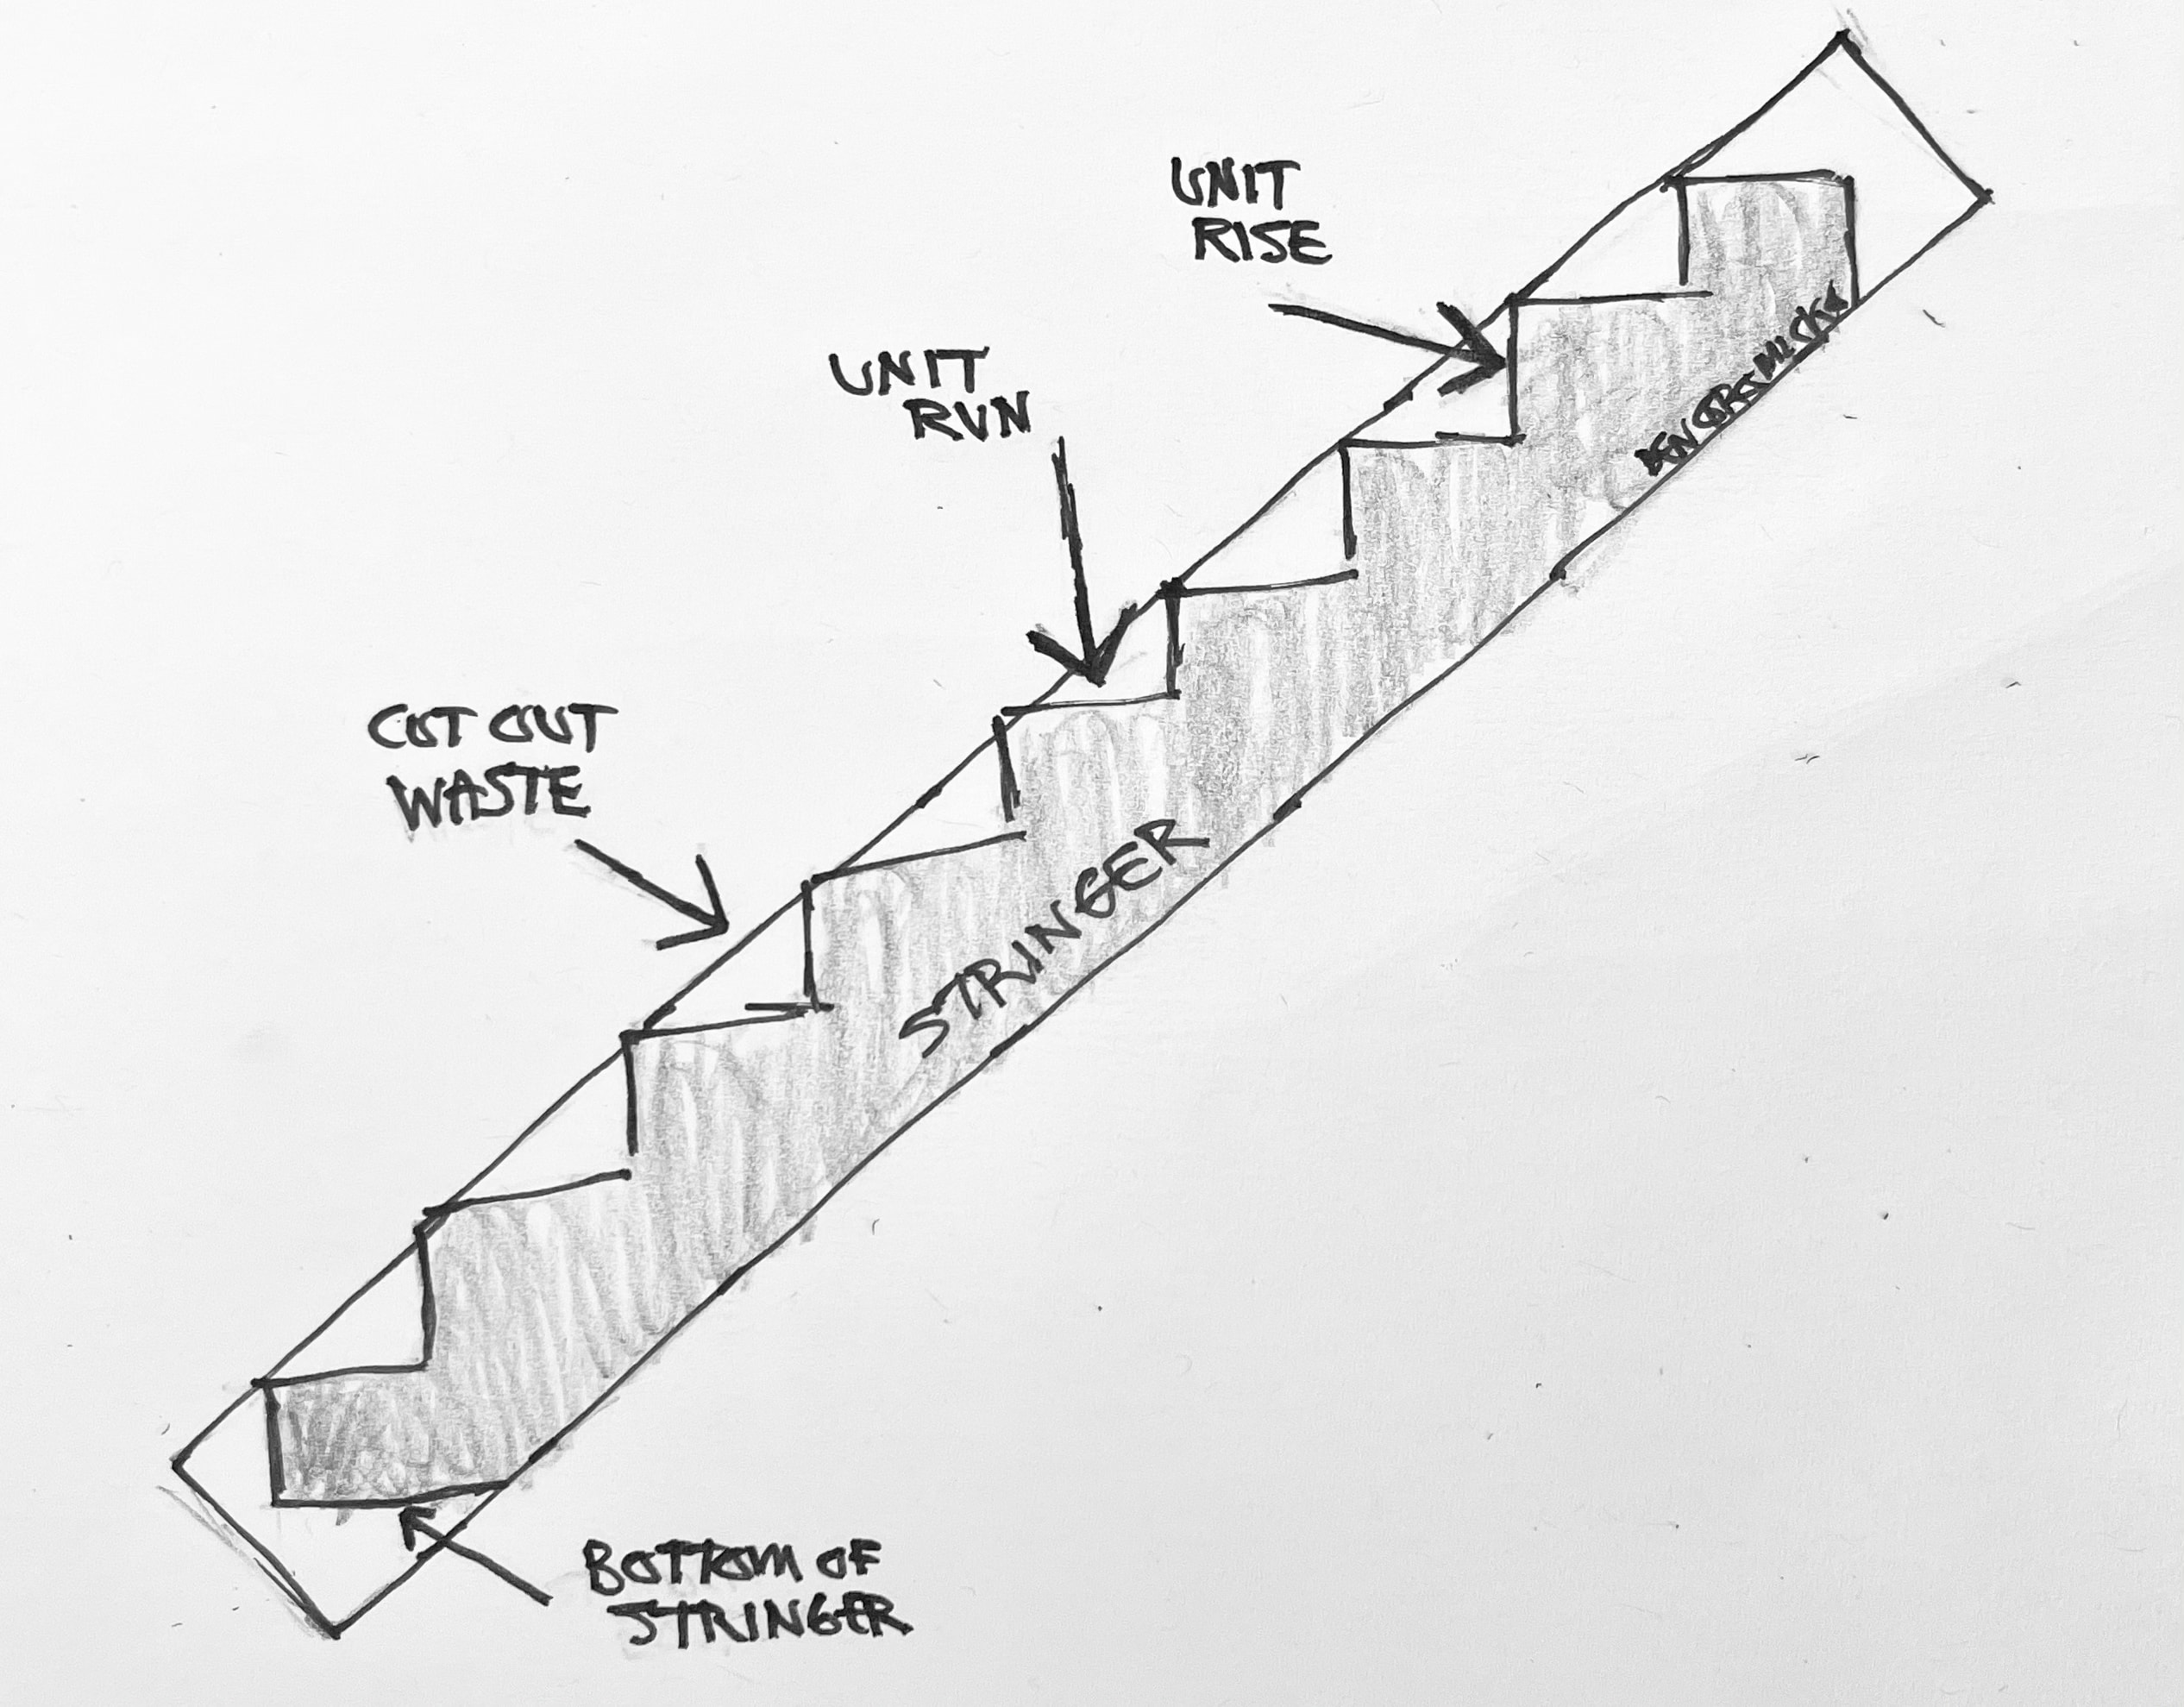 Each riser of a stairway stringer may be cut at 7 and ¼-inch in height with 10 and 1/2-inch length treads, but the unit rise and unit run measurements will depend upon the total rise and total span of the staircase.